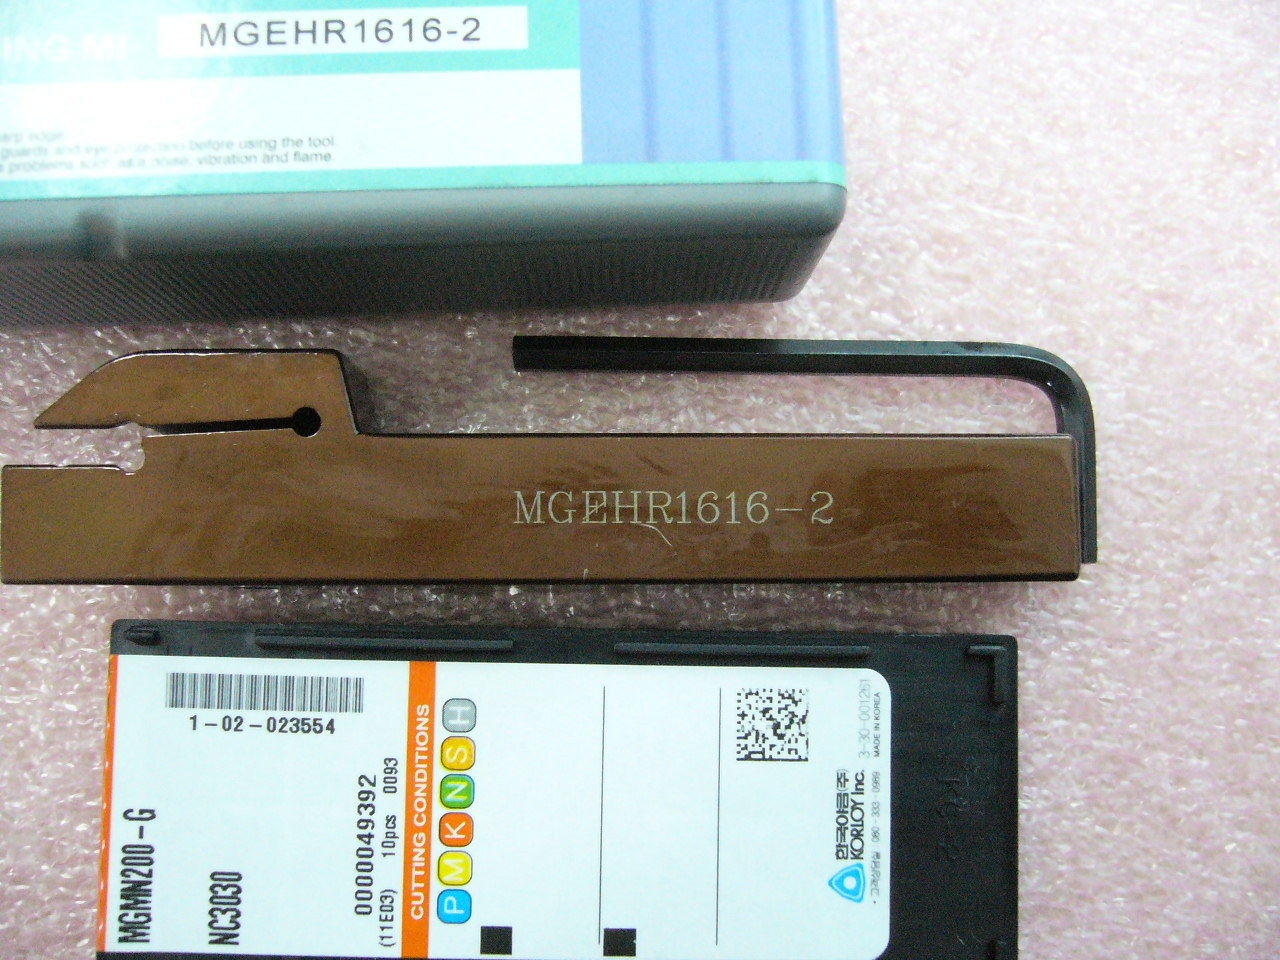 Grooving Parting 2mm Korloy inserts MGMN200-G NC3030 with Toolholder MGEHR1616-2